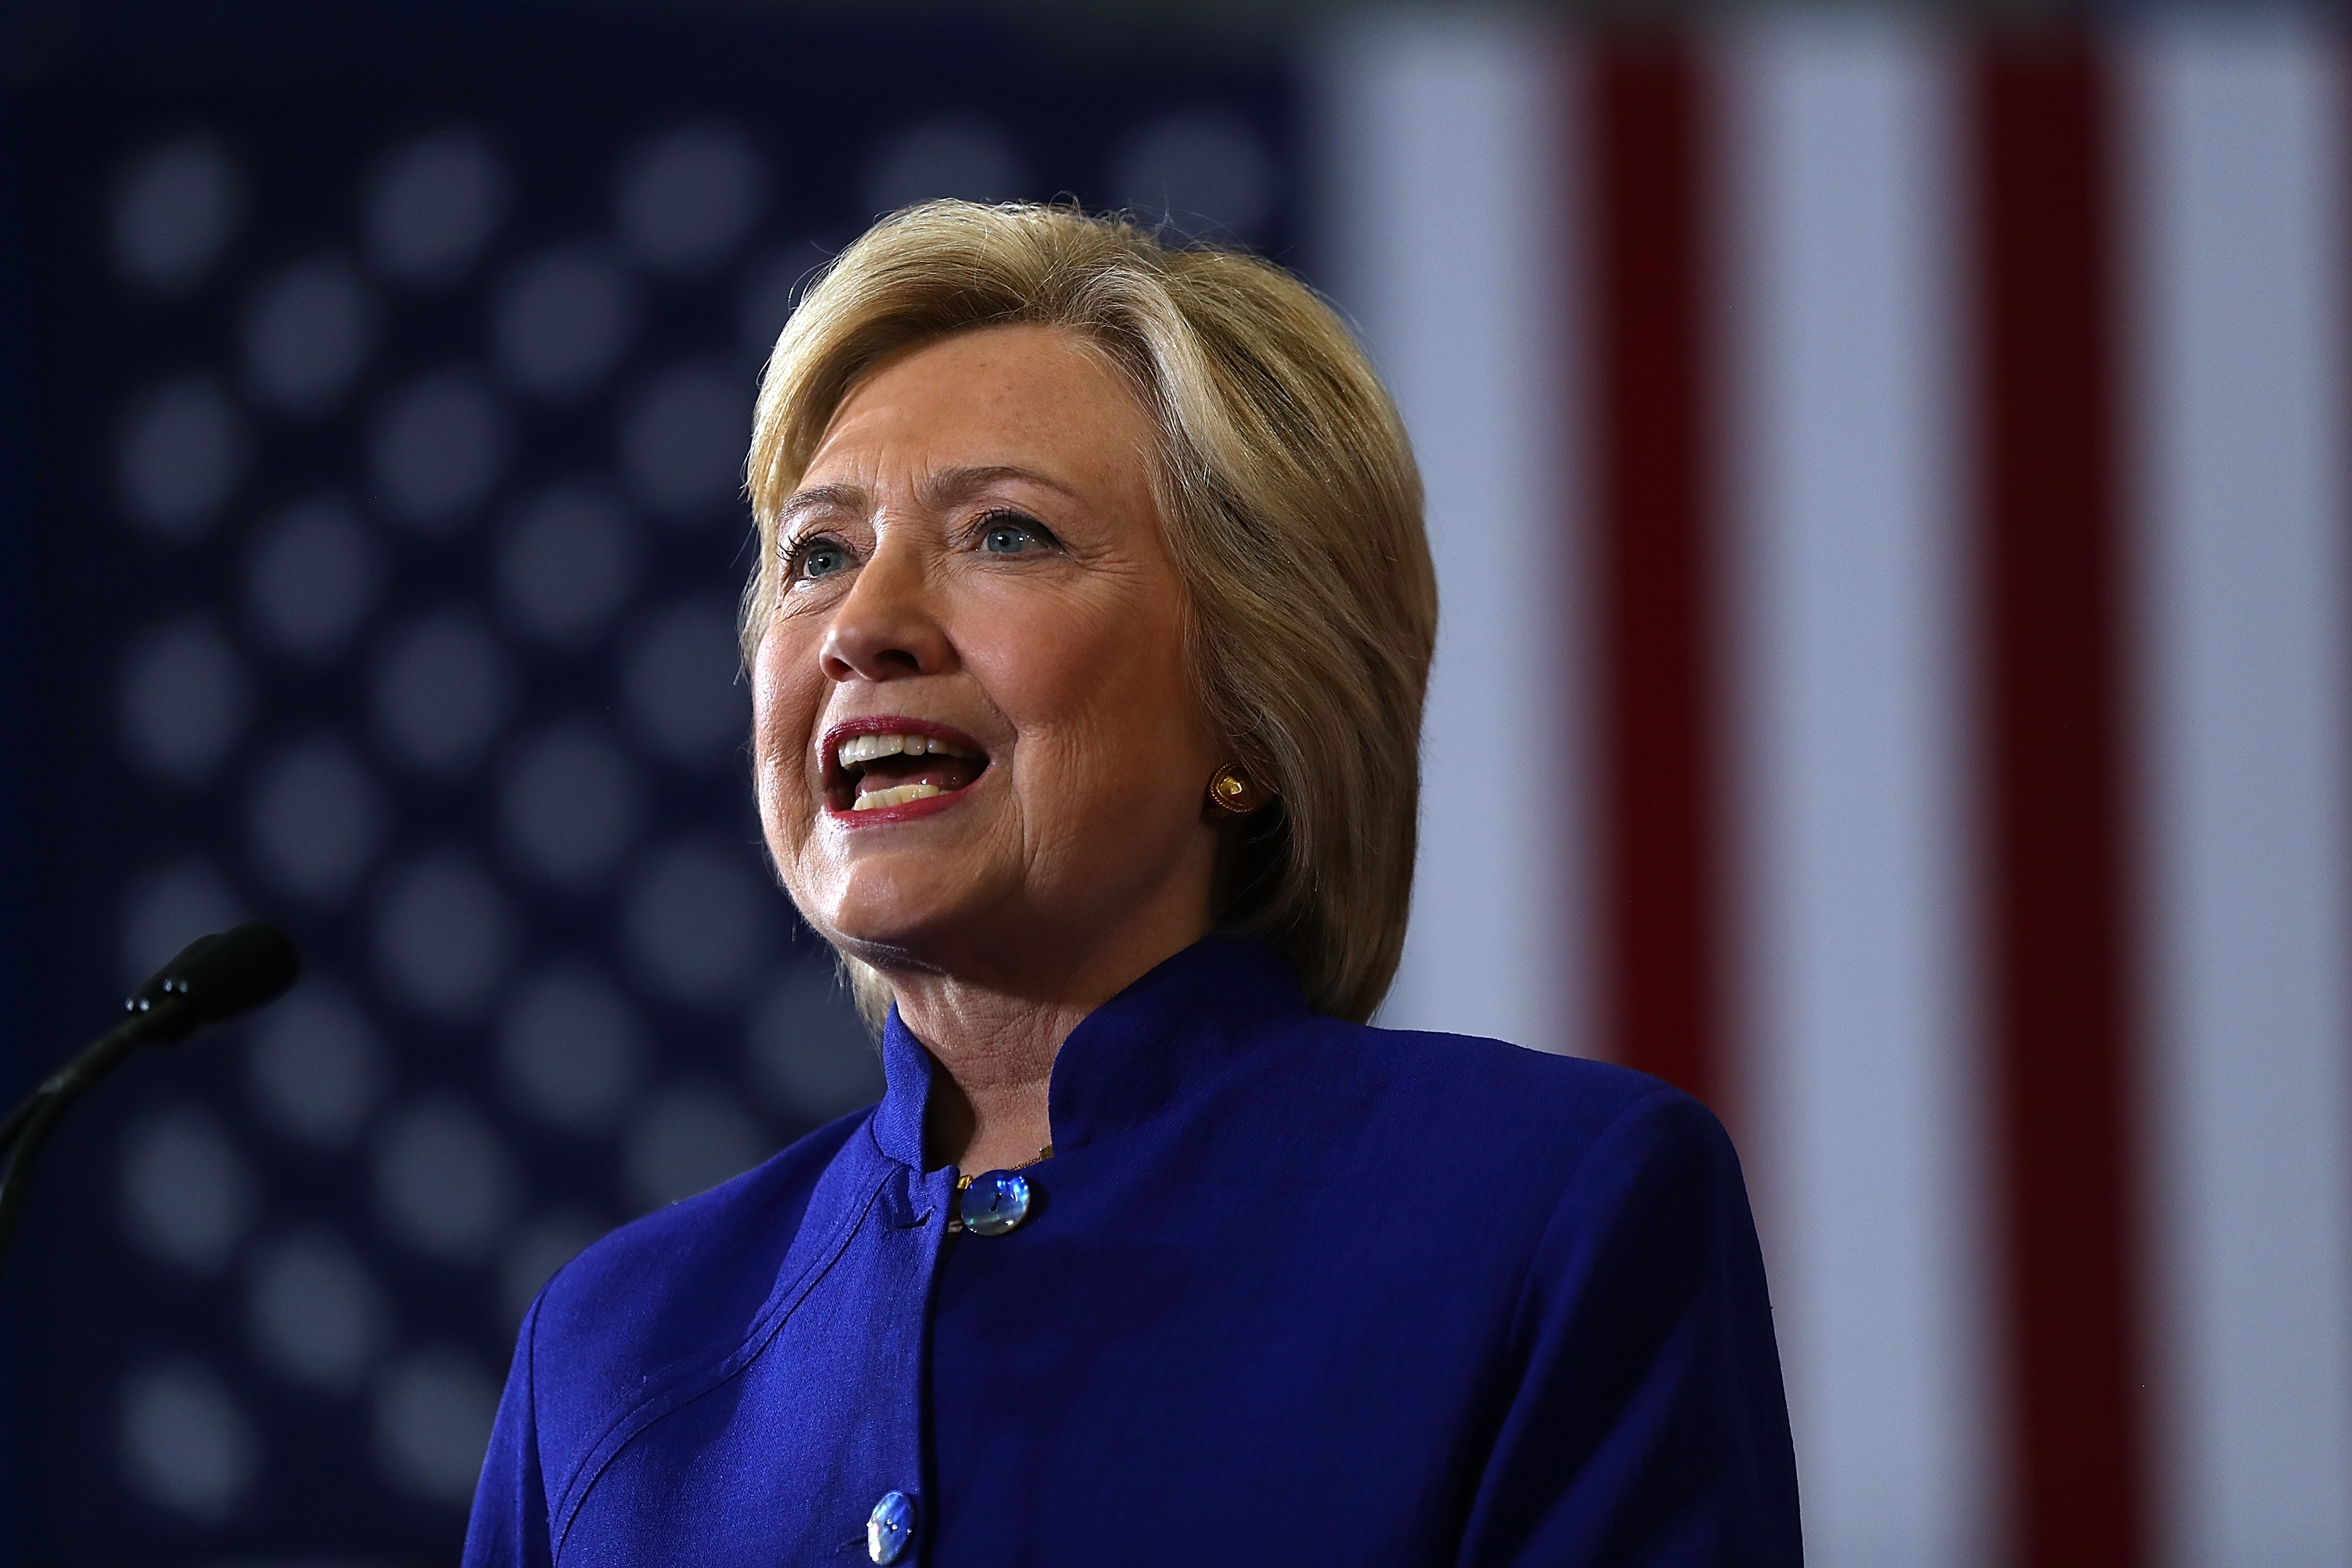 Emails from aides to Democratic presidential nominee Hillary Clinton show a recent speech on gun safety was